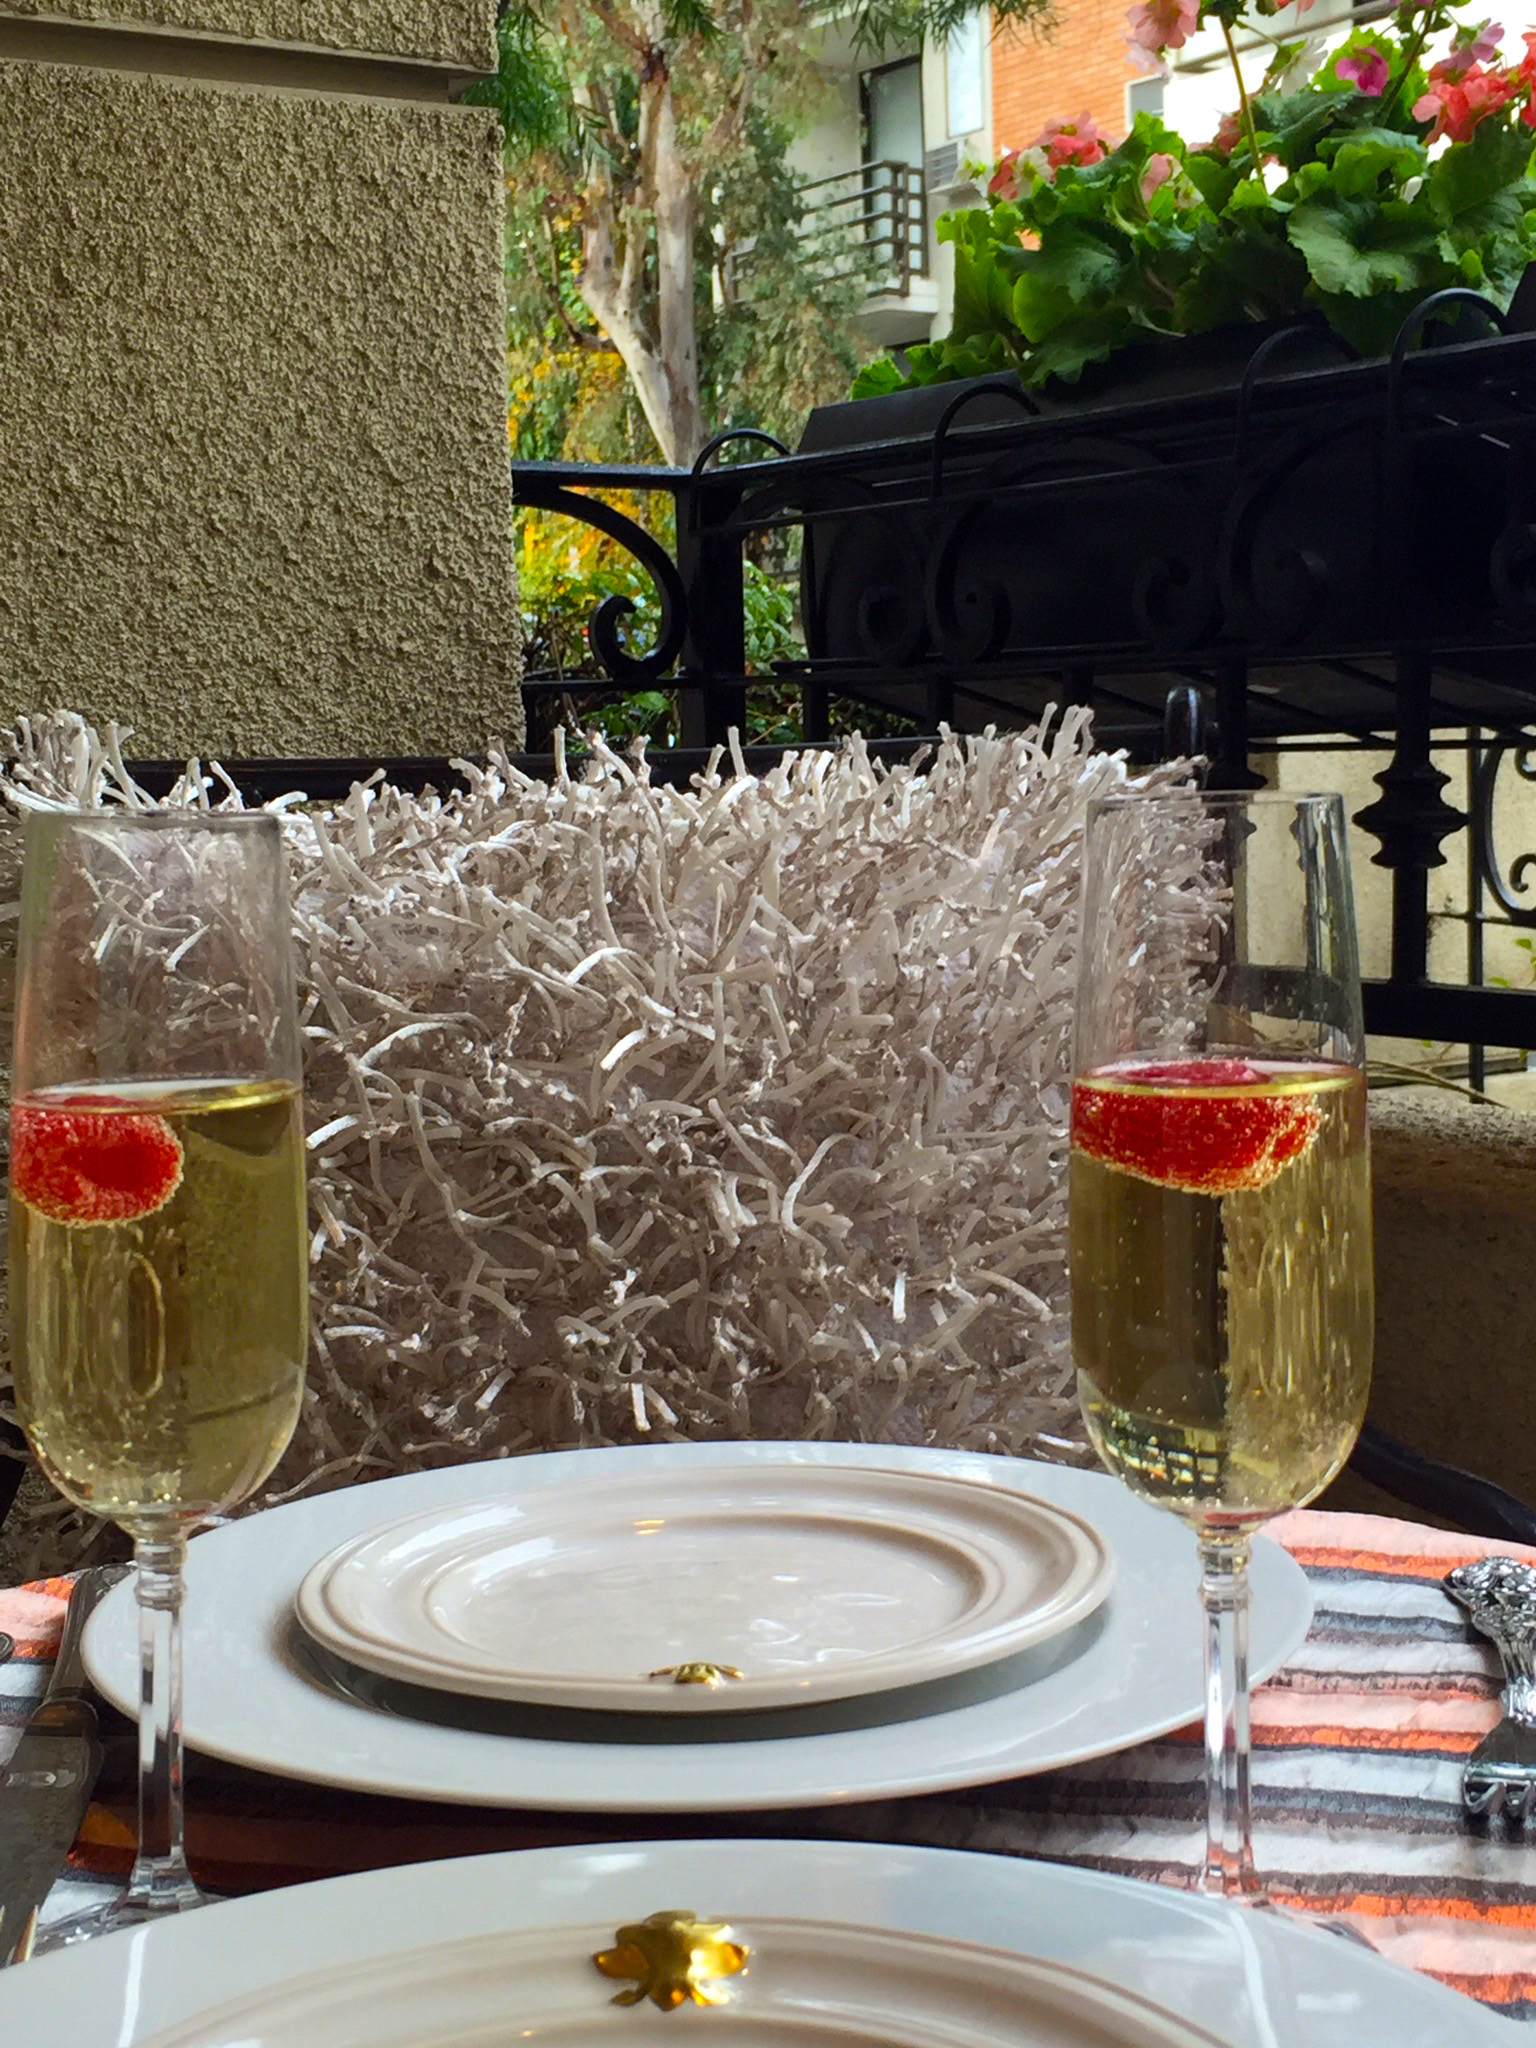 My Tablescape Inspiration: Champagne and Raspberries on the Balcony